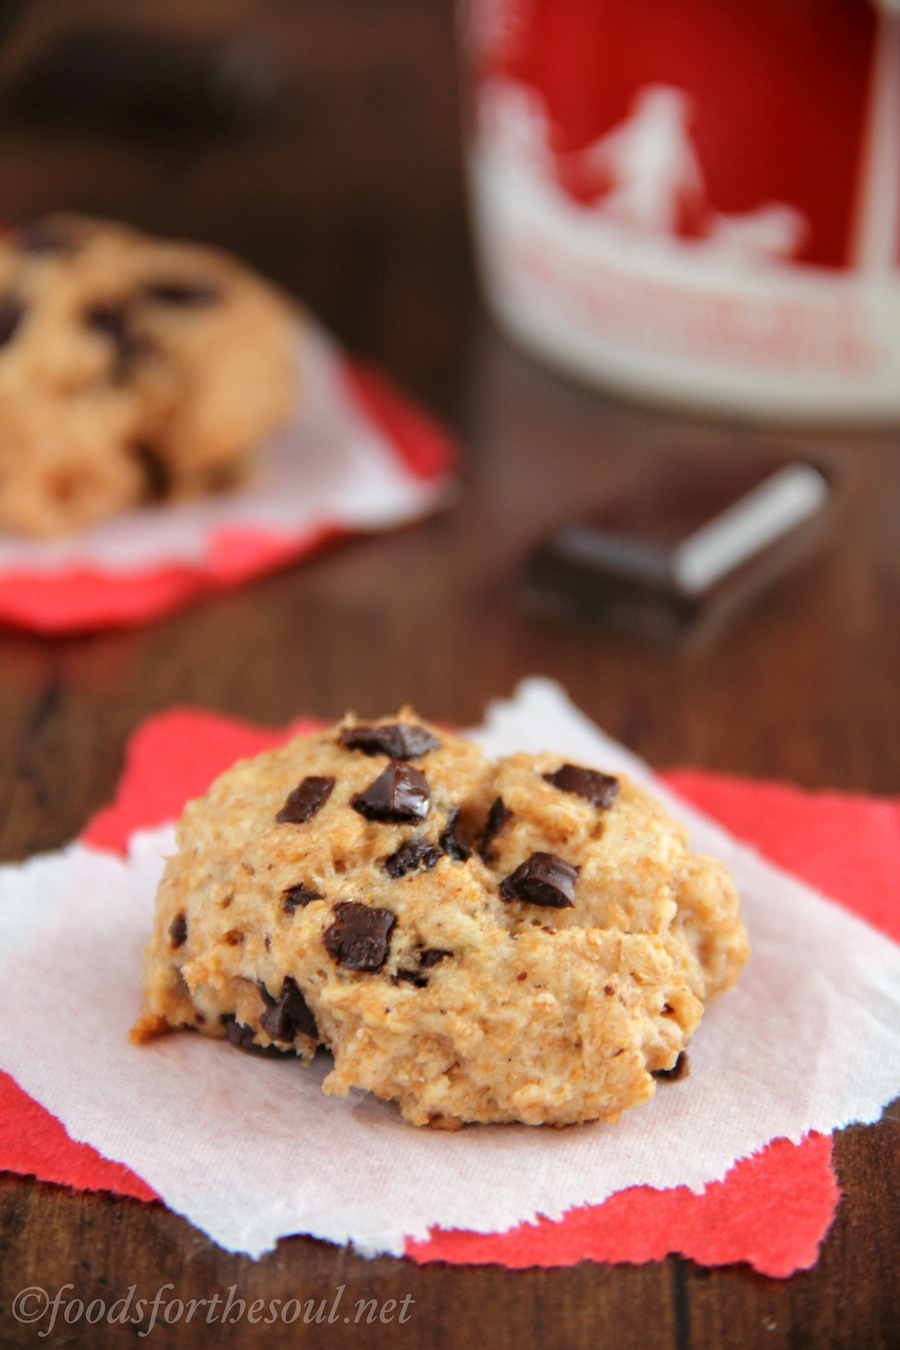 A irresistible combination of scones & cookies! Moist & tender with rich dark chocolate. The best healthy clean-eating treat!